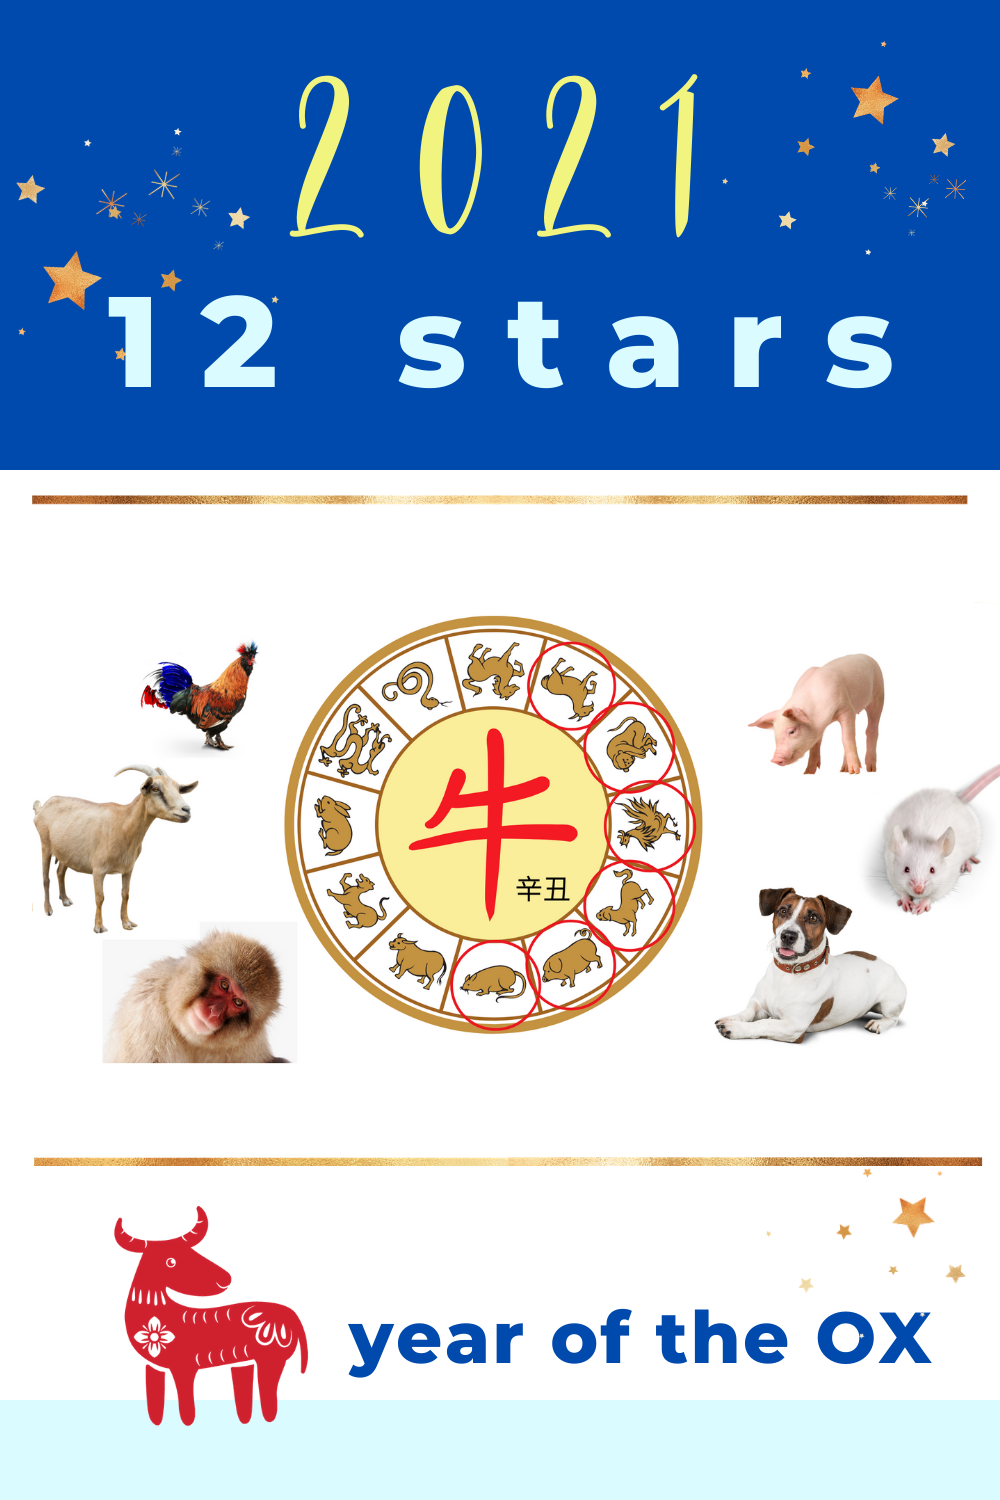 2021 Ox Year Zodiac Sign Part 2 Forecast 2021 Ox Year Pet Signs Chinese Zodiac Signs